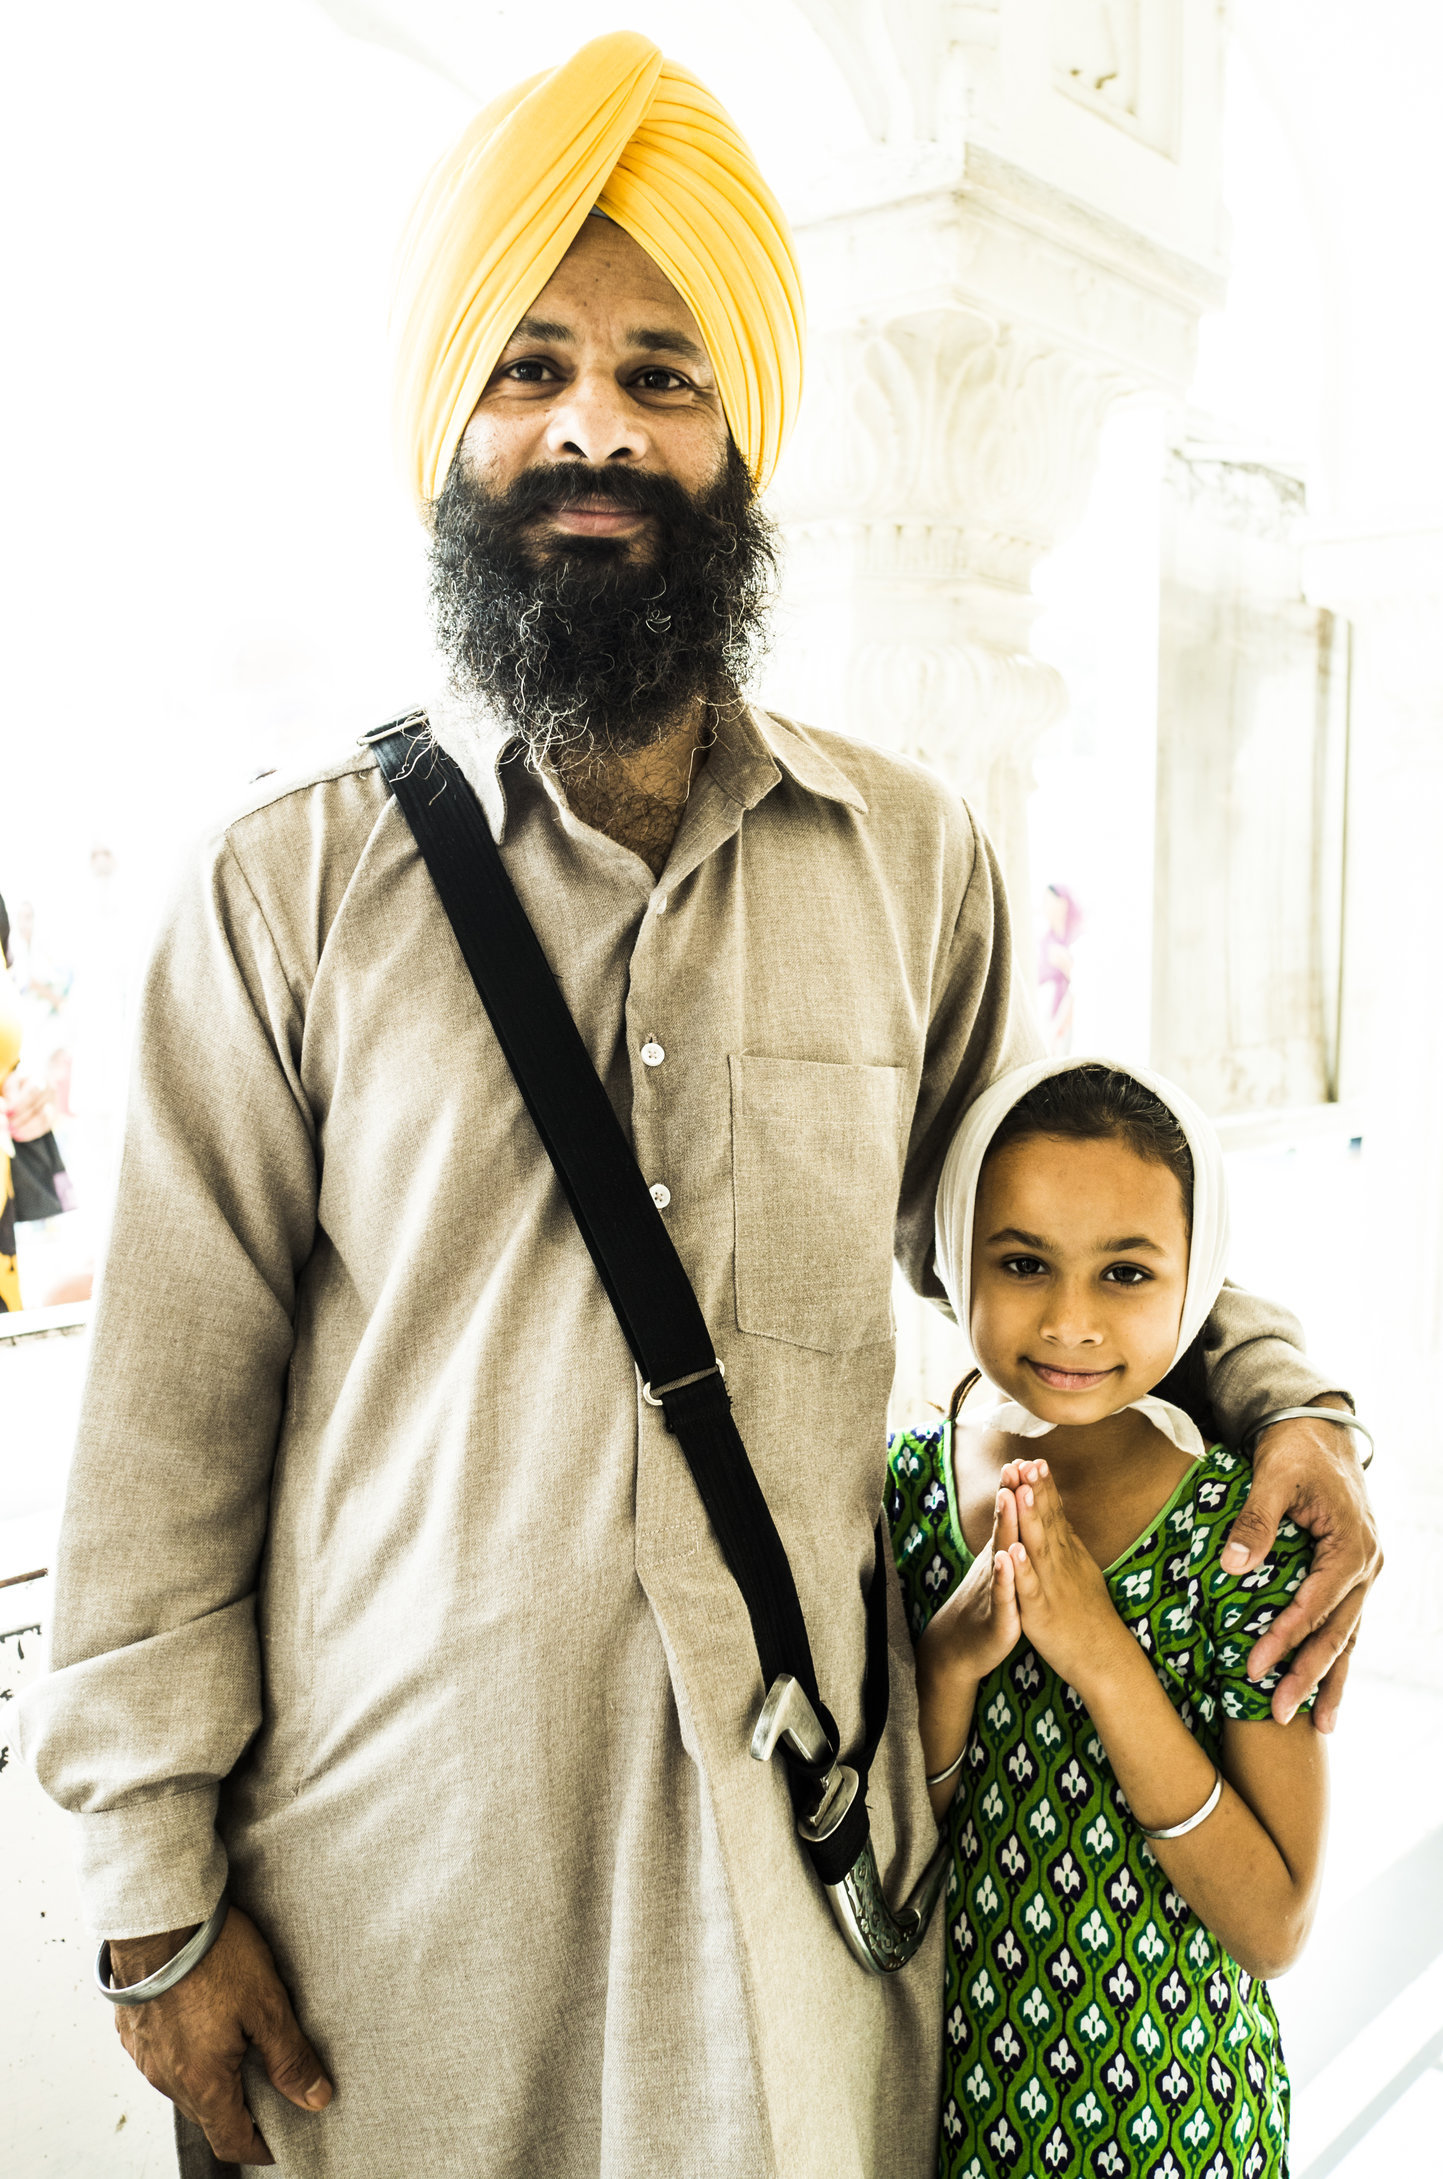 Amritsar, India. 2015.